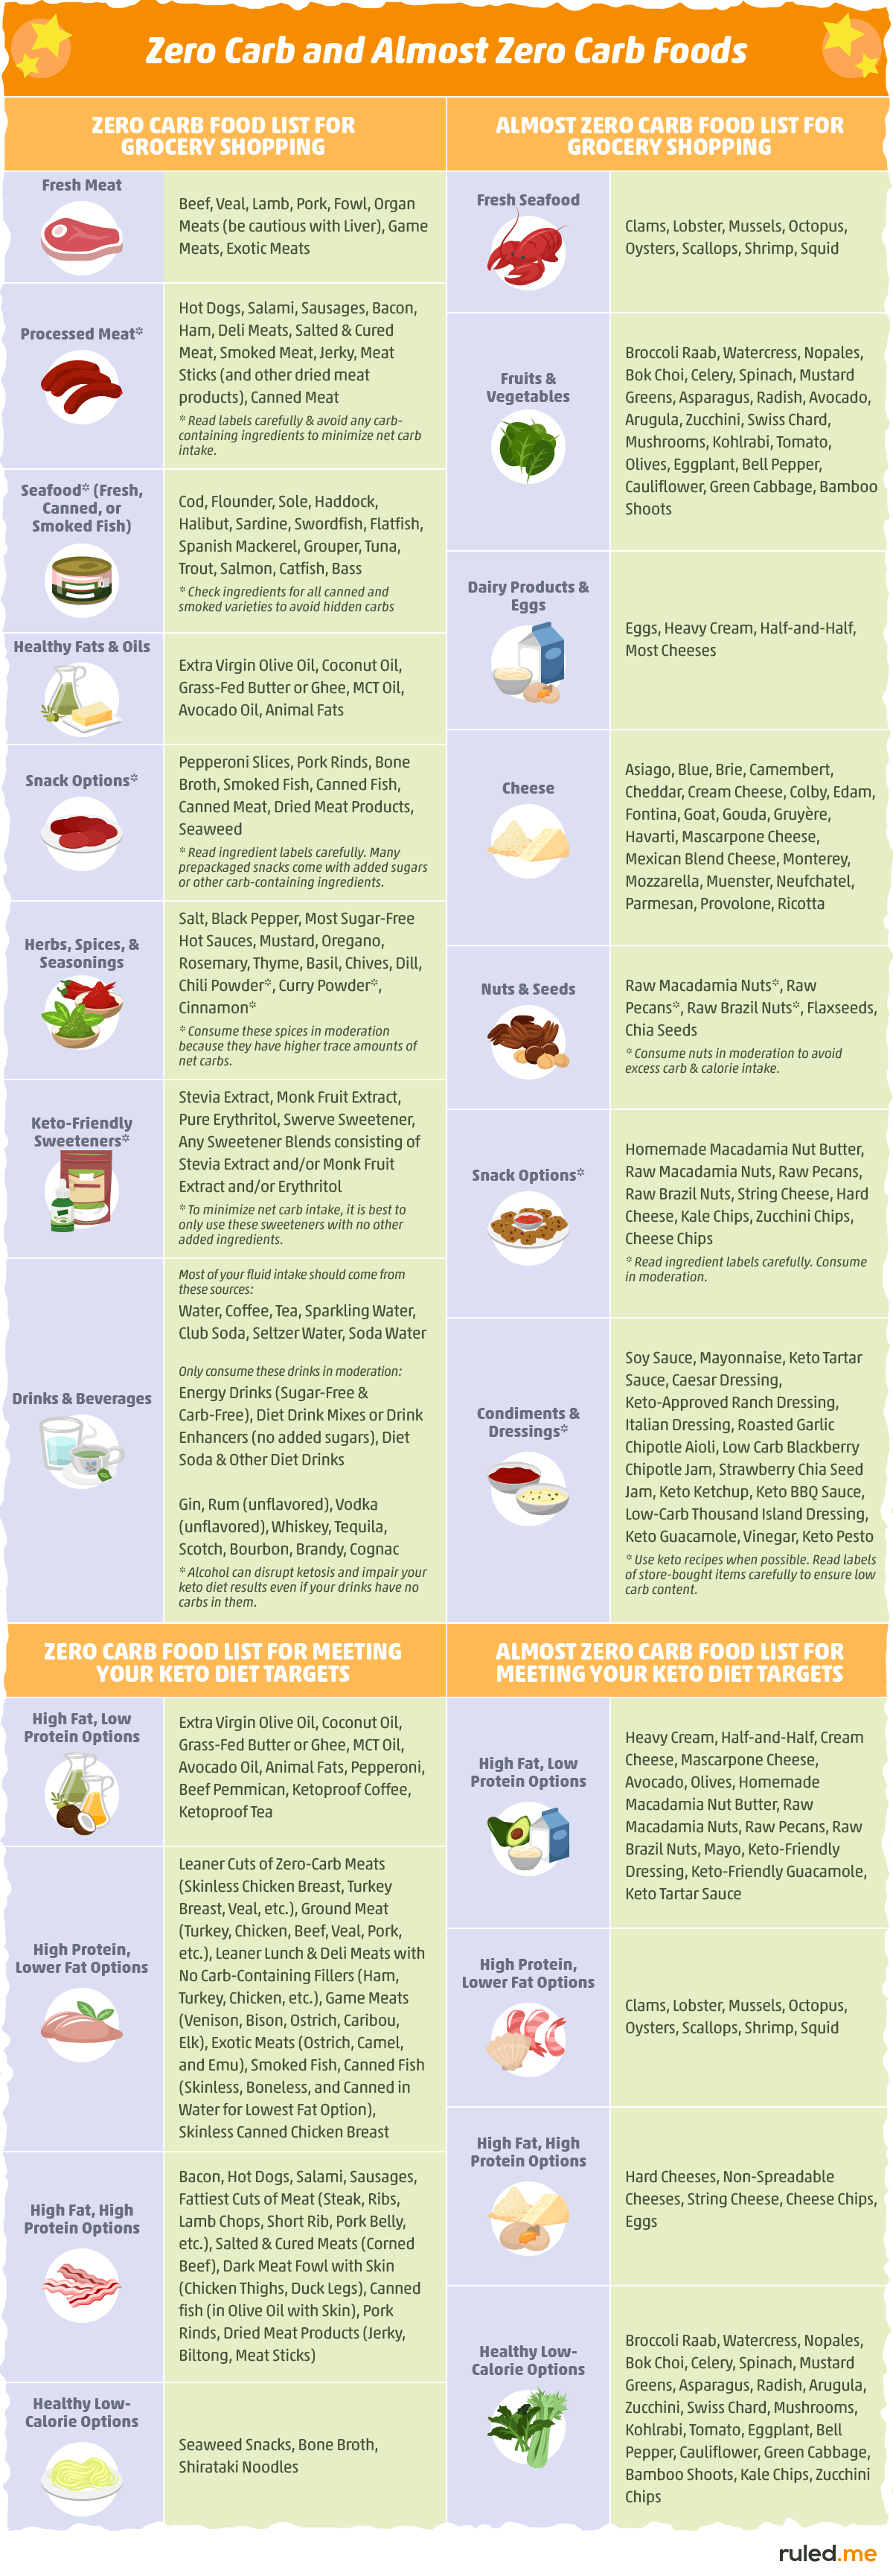 All Zero Carb and Almost Zero Carb Foods on One List